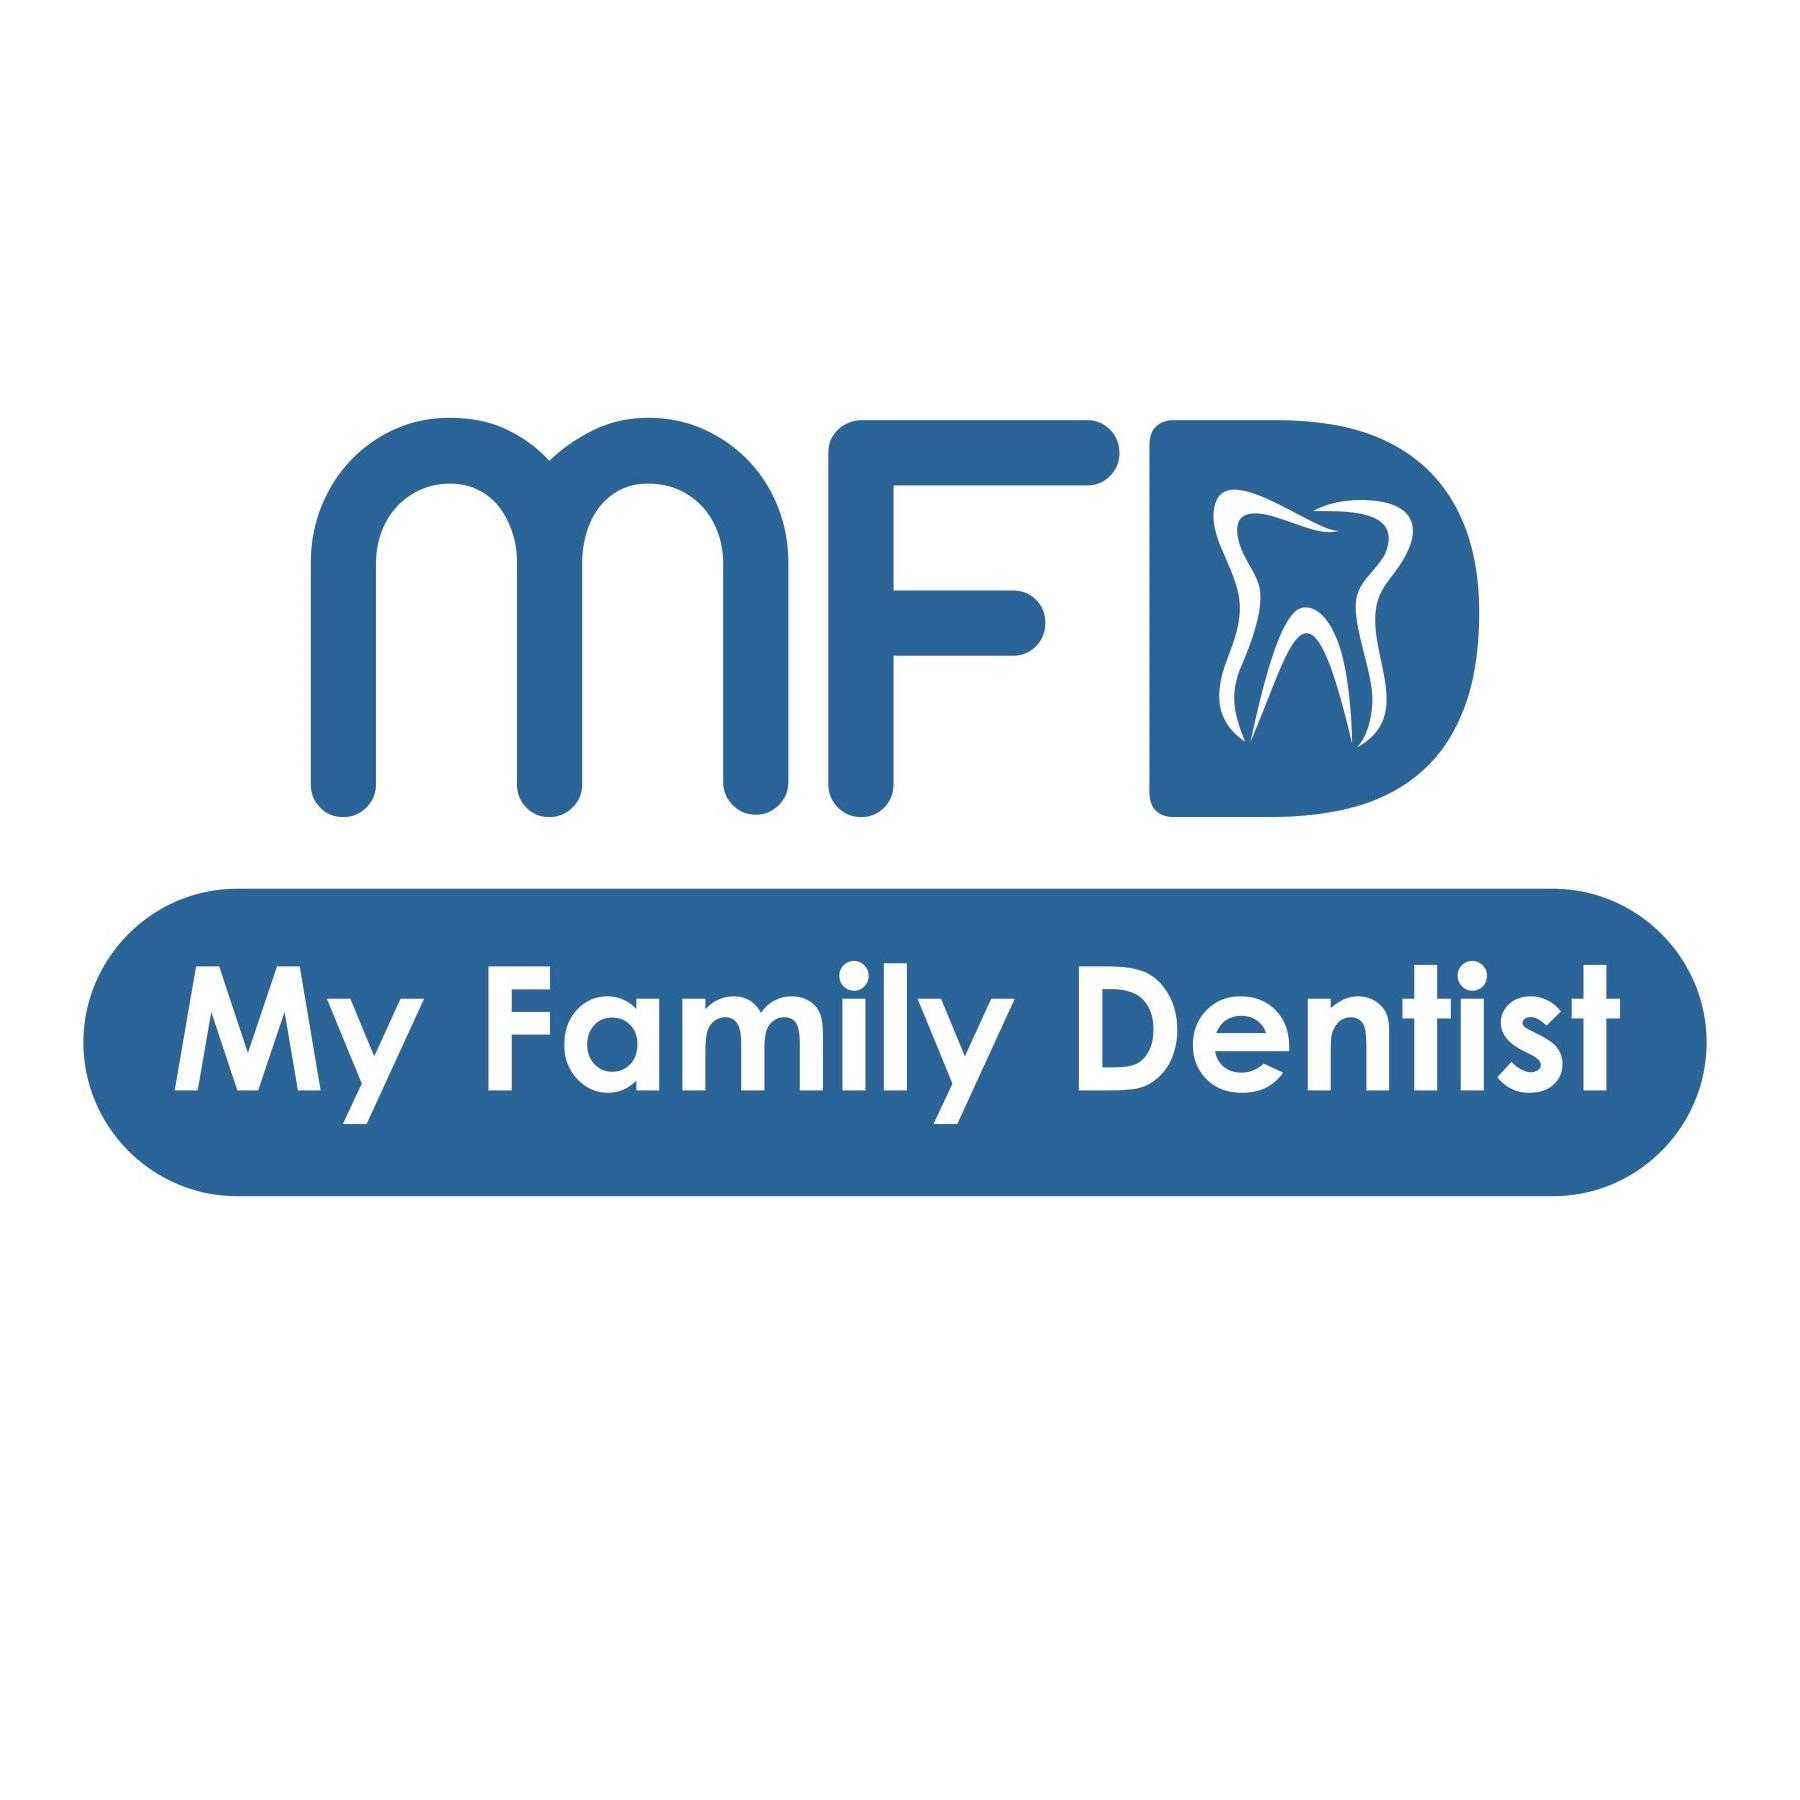 My Family Dentist